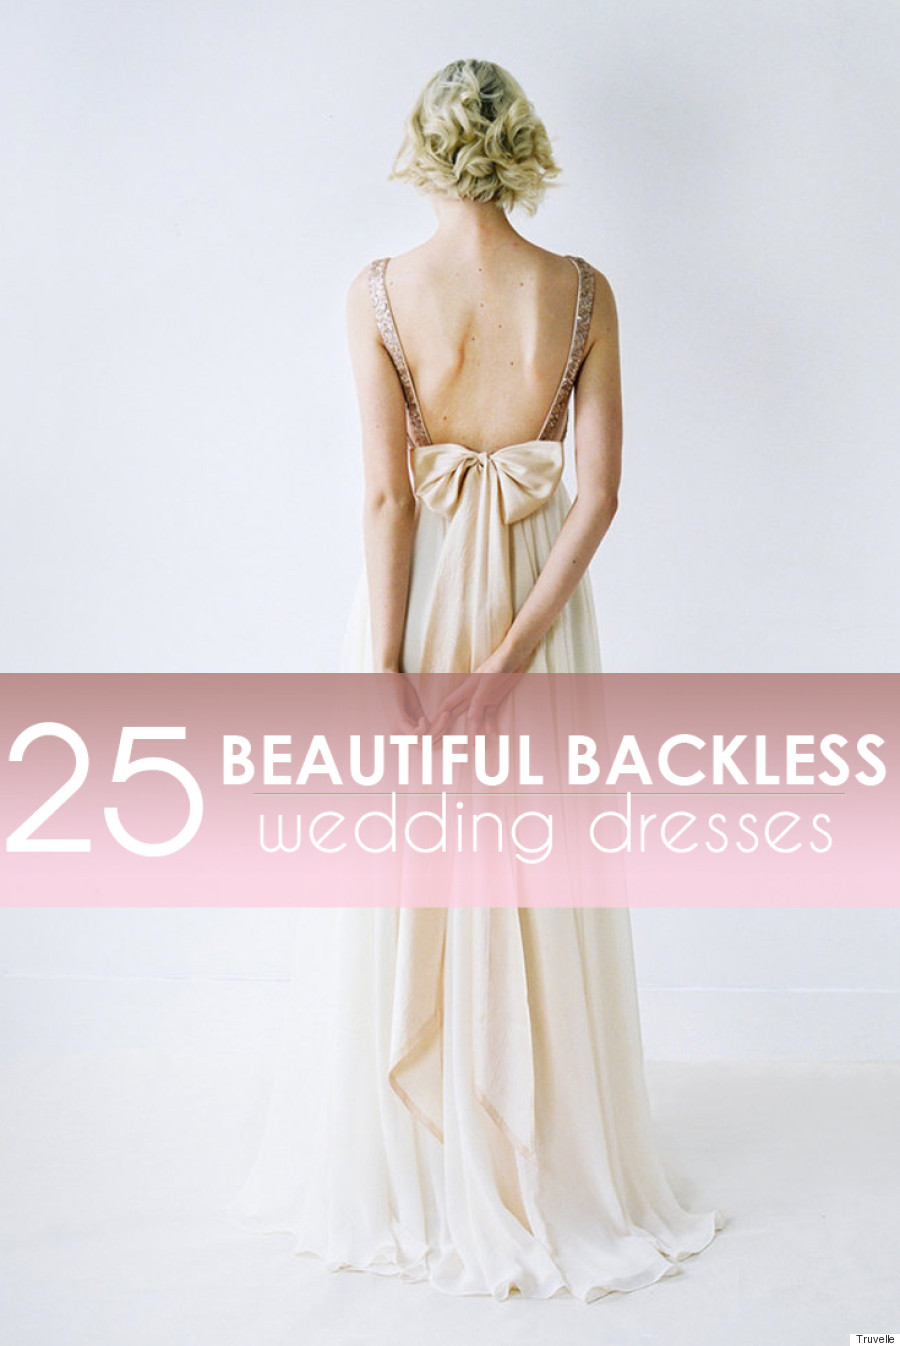 25 Beautiful Backless Wedding Dresses For Any Bride